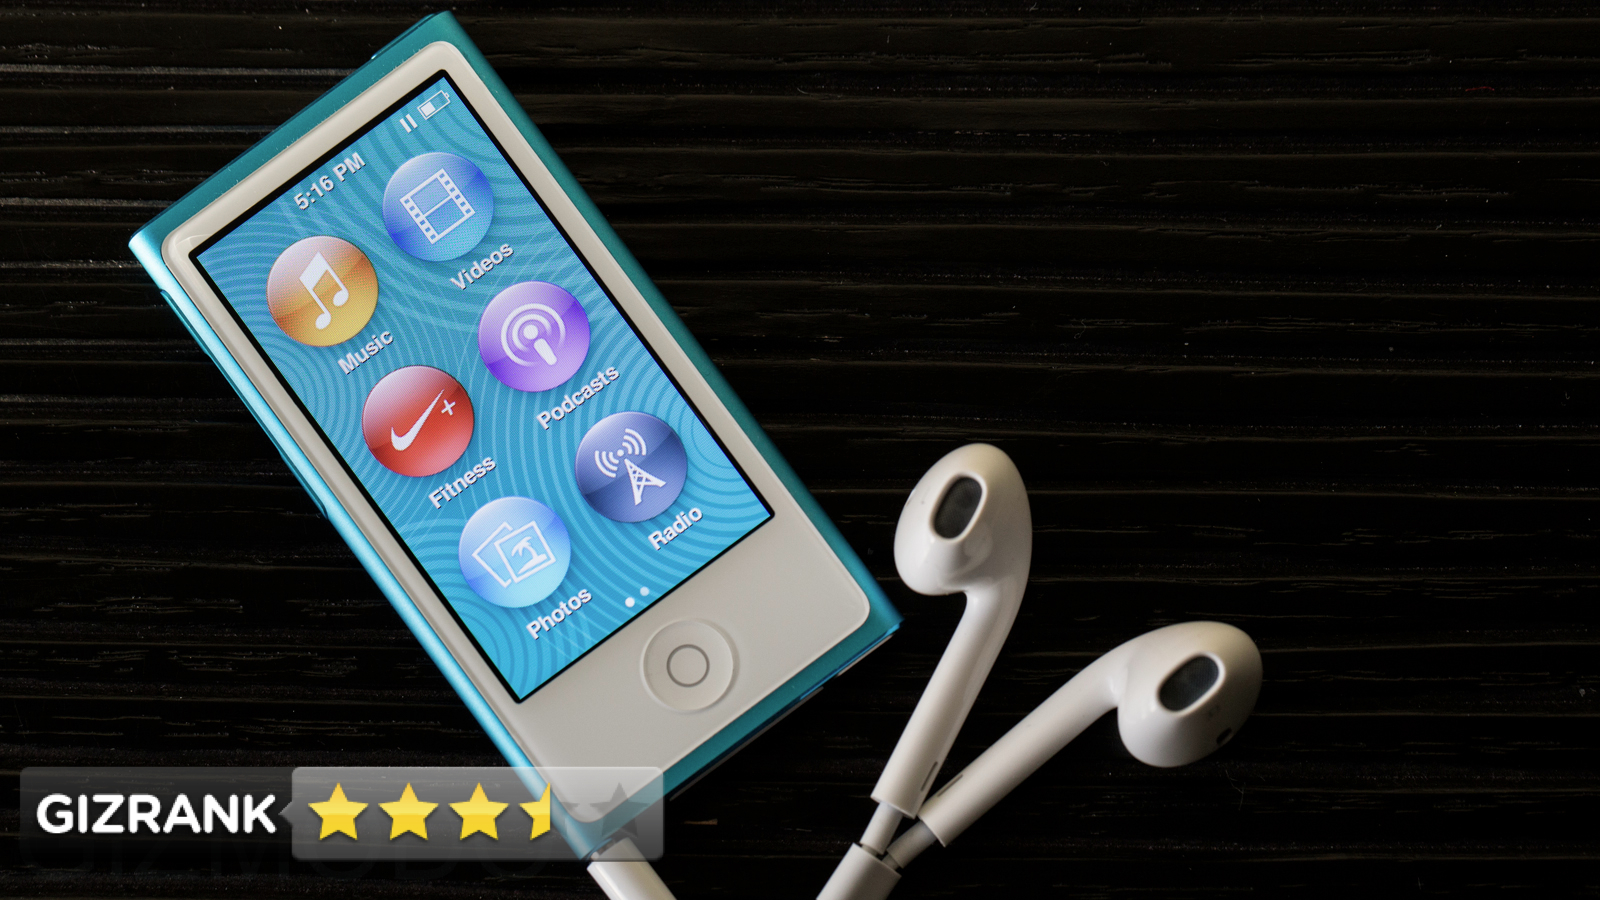 Click here to read iPod Nano Review: The Best MP3 Player Ever, For Whatever That